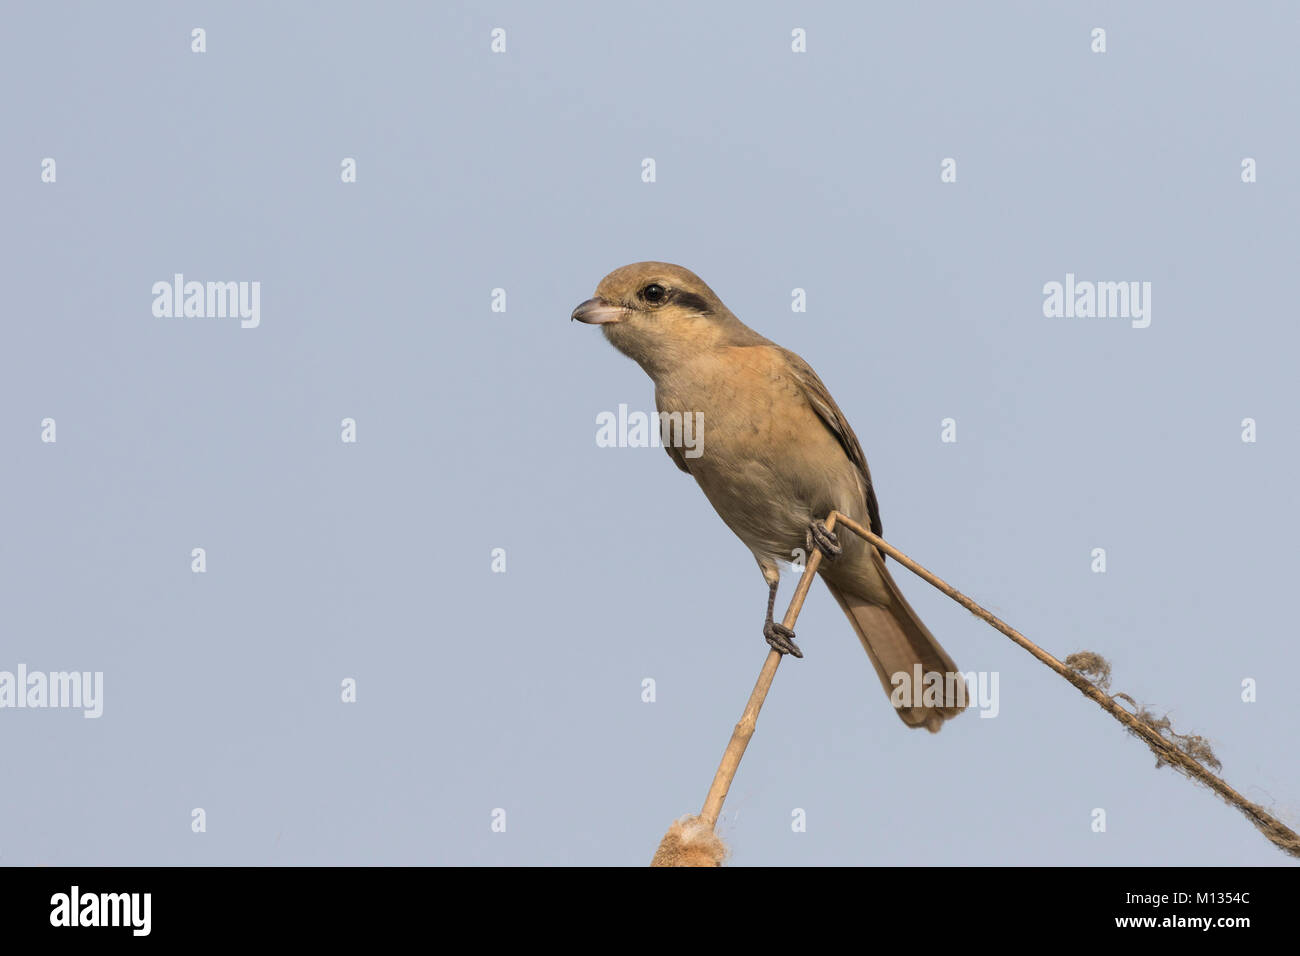 Beautiful Isabelline Shrike bird perched on a dry twig with a clean background - Stock Image